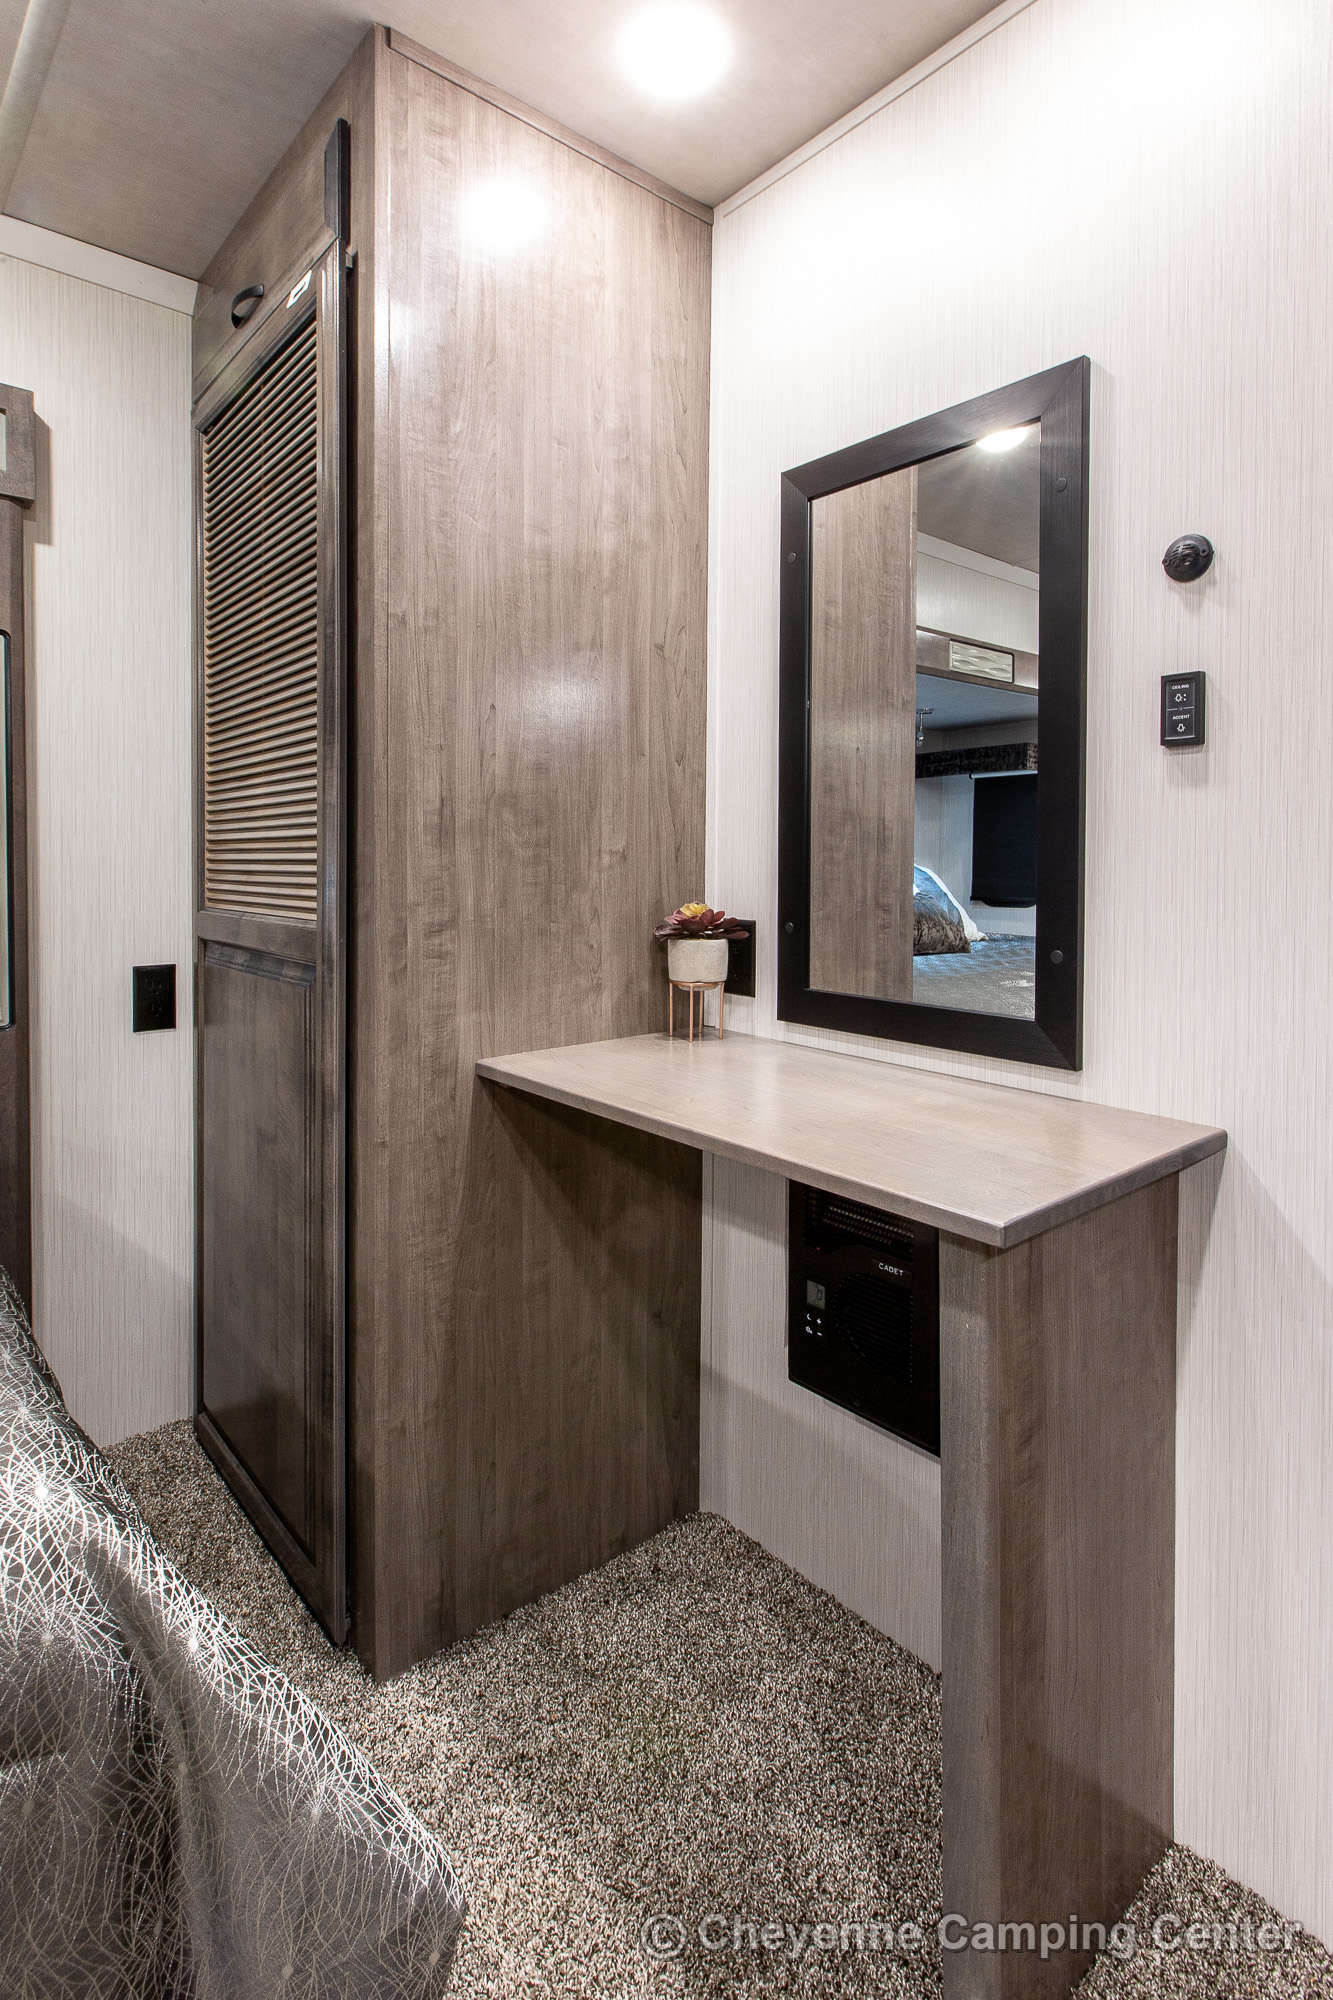 2022 Forest River Cedar Creek Champagne Edition 38EBS Fifth Wheel Interior Image